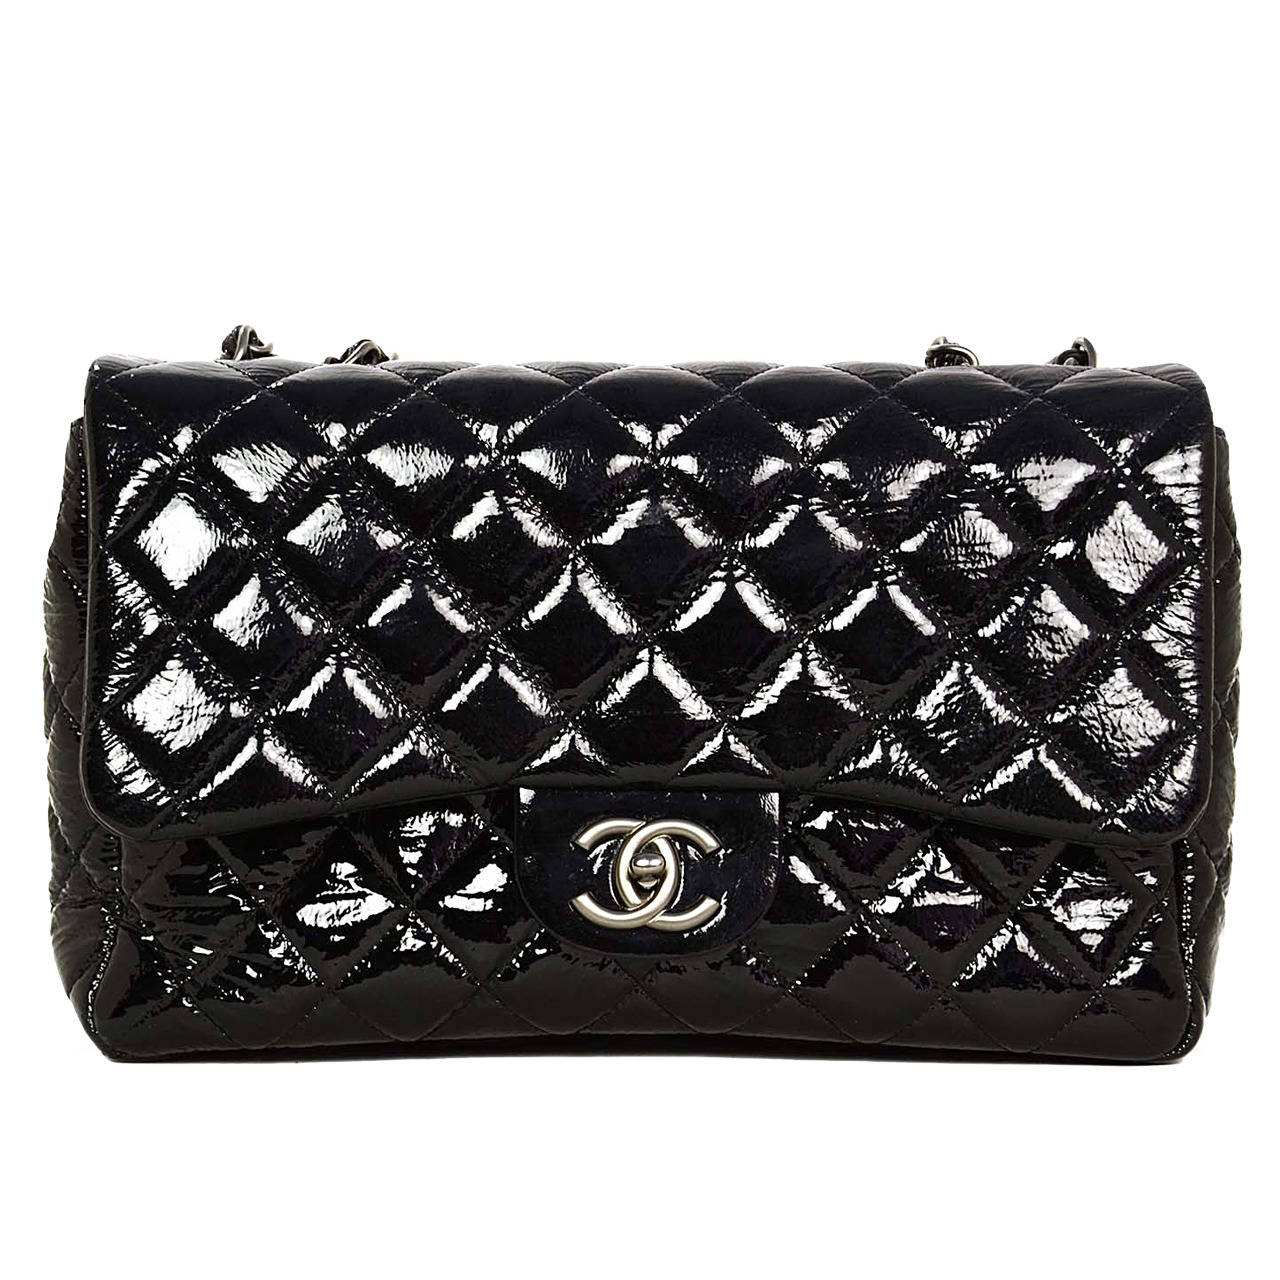 cf8f128e85bf Chanel Quilted Black Patent Leather Large Jumbo Classic Flap Bag For Sale